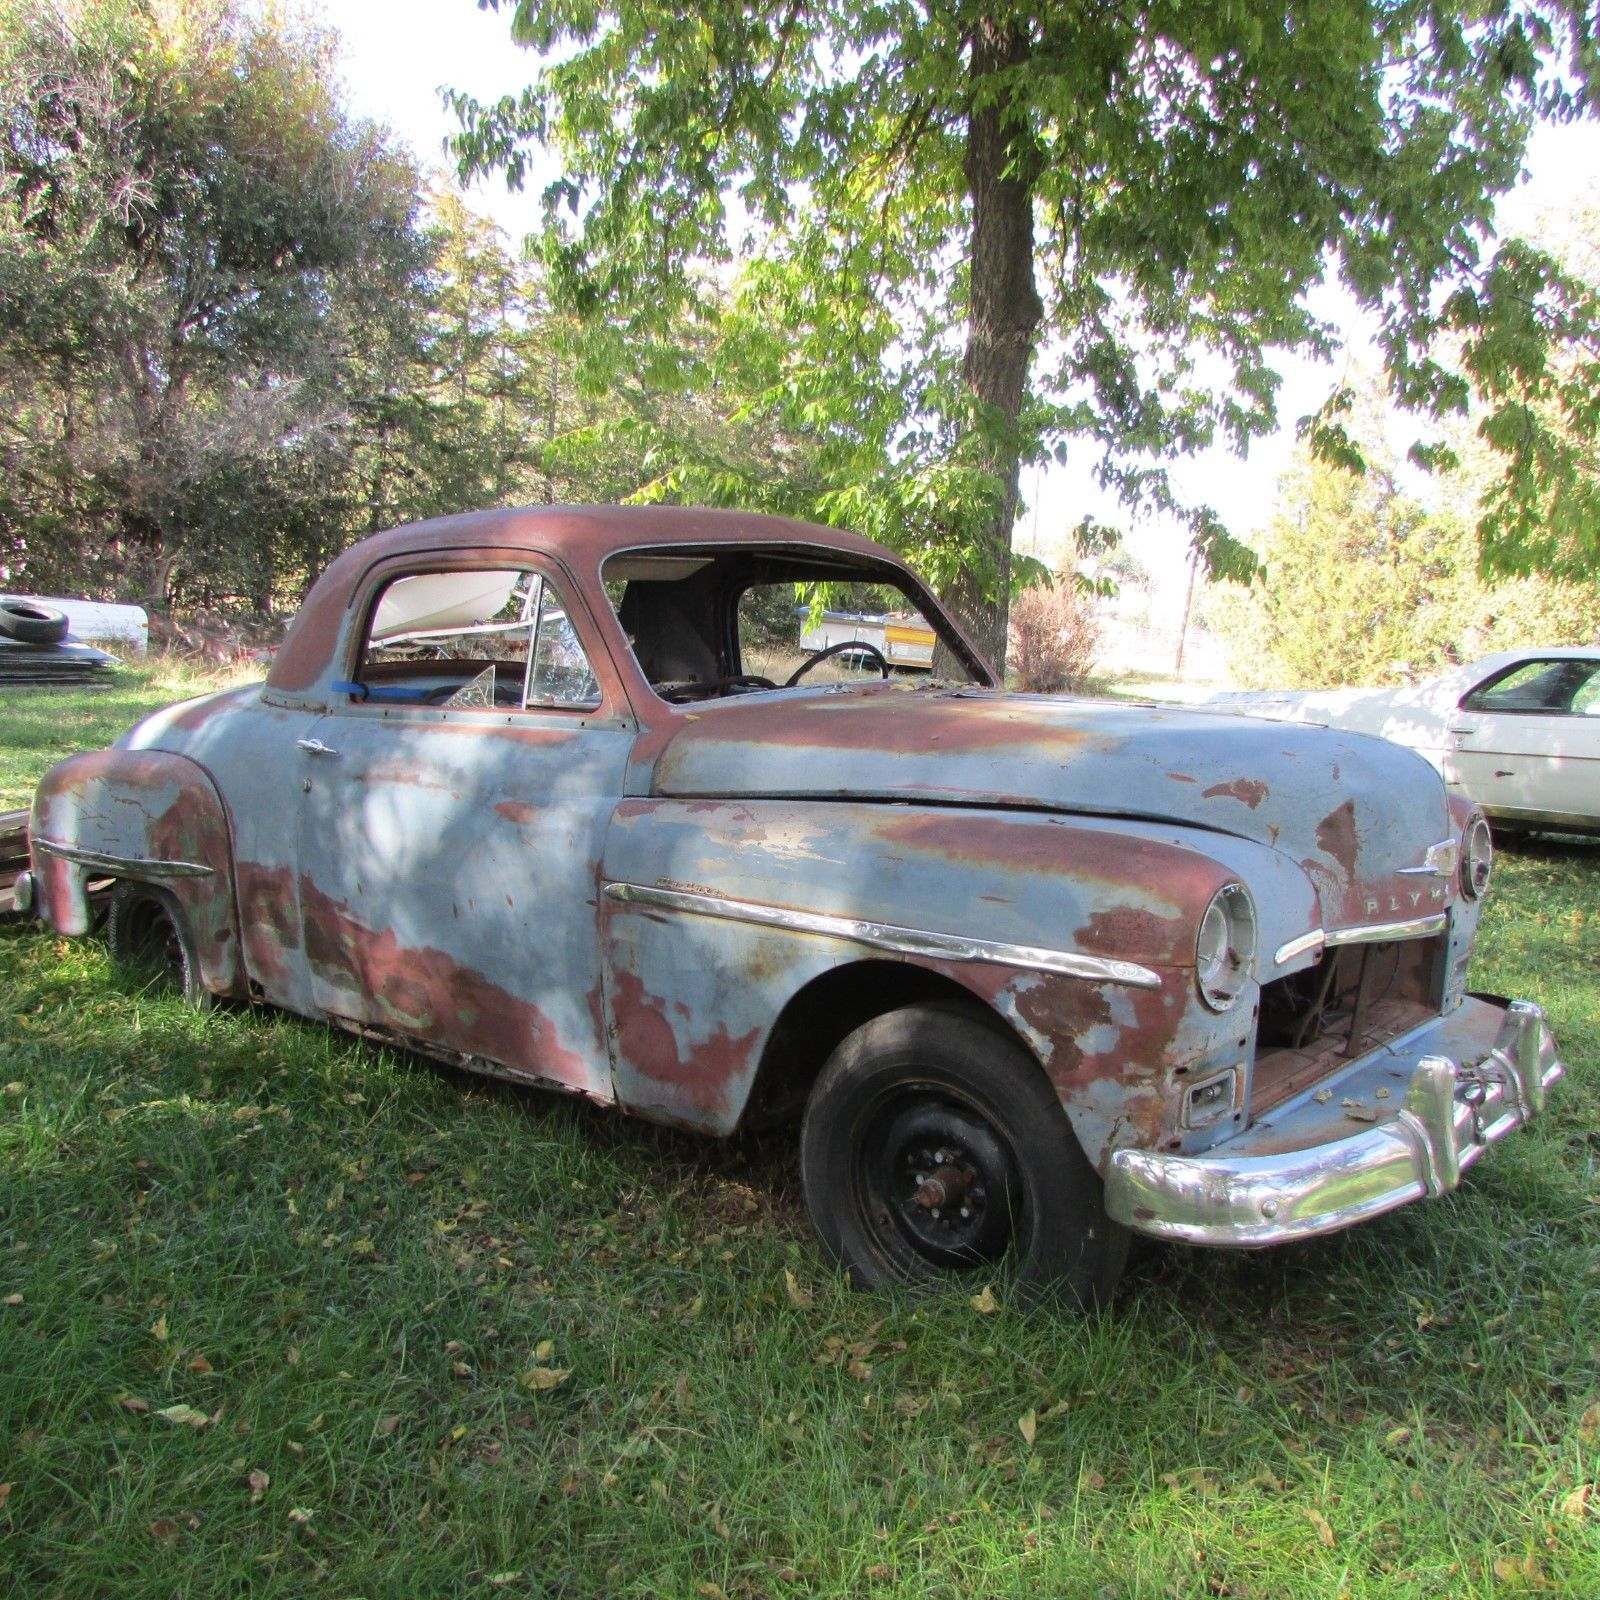 1950 Plymouth deluxe | Plymouth, Motor car and Cars